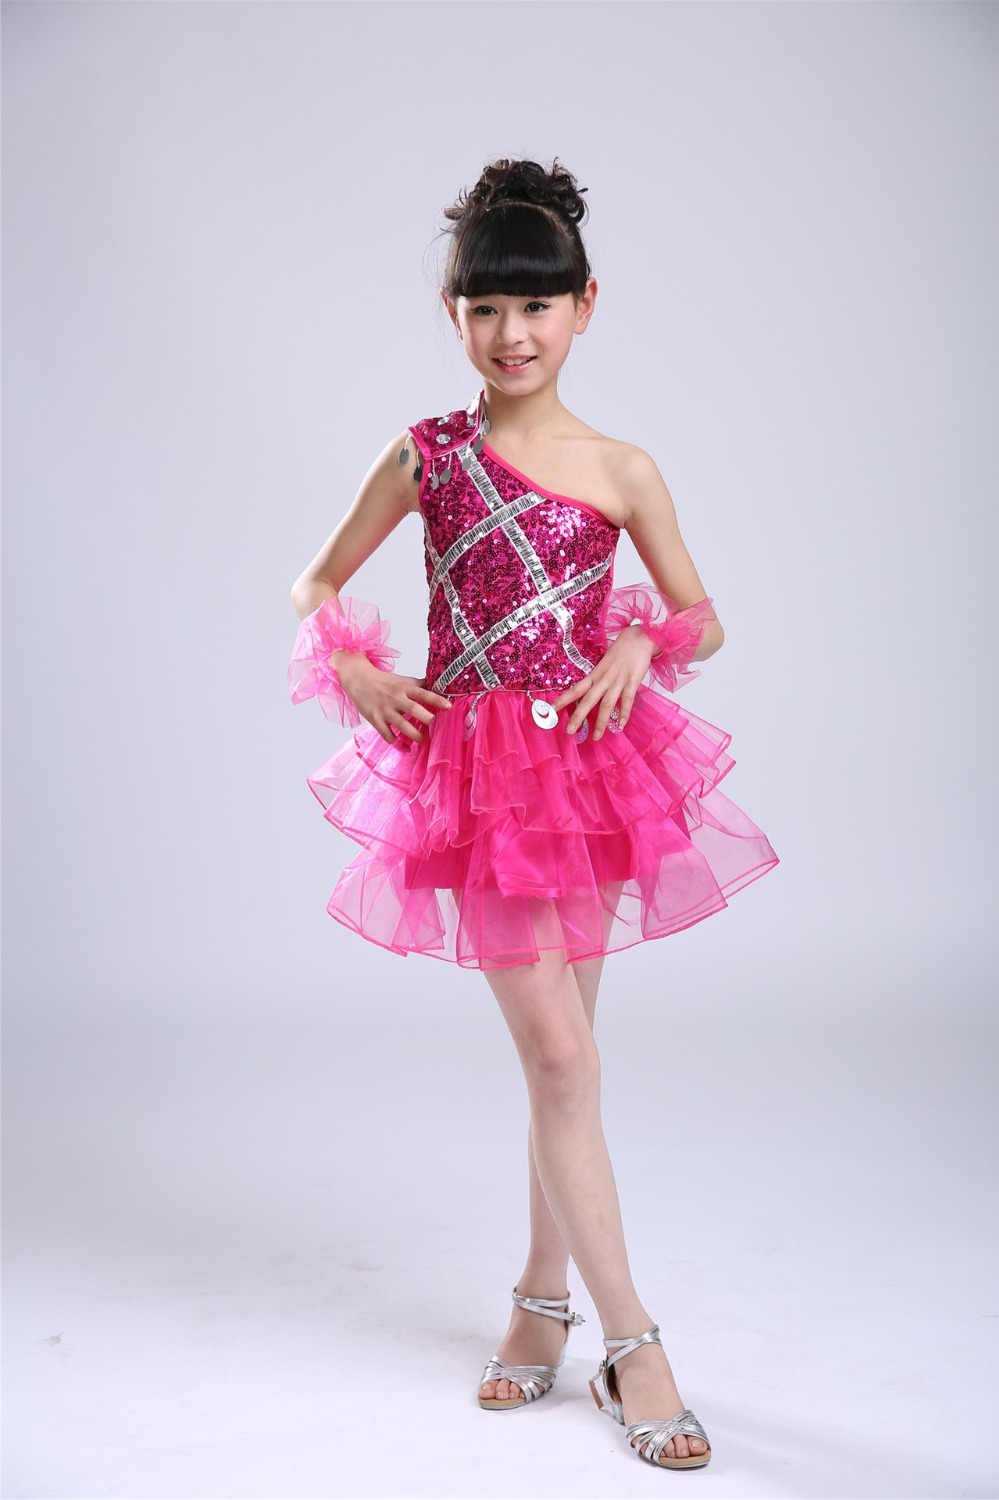 4736d773c Detail Feedback Questions about Girl Kids Sequin Leotard Ballet ...